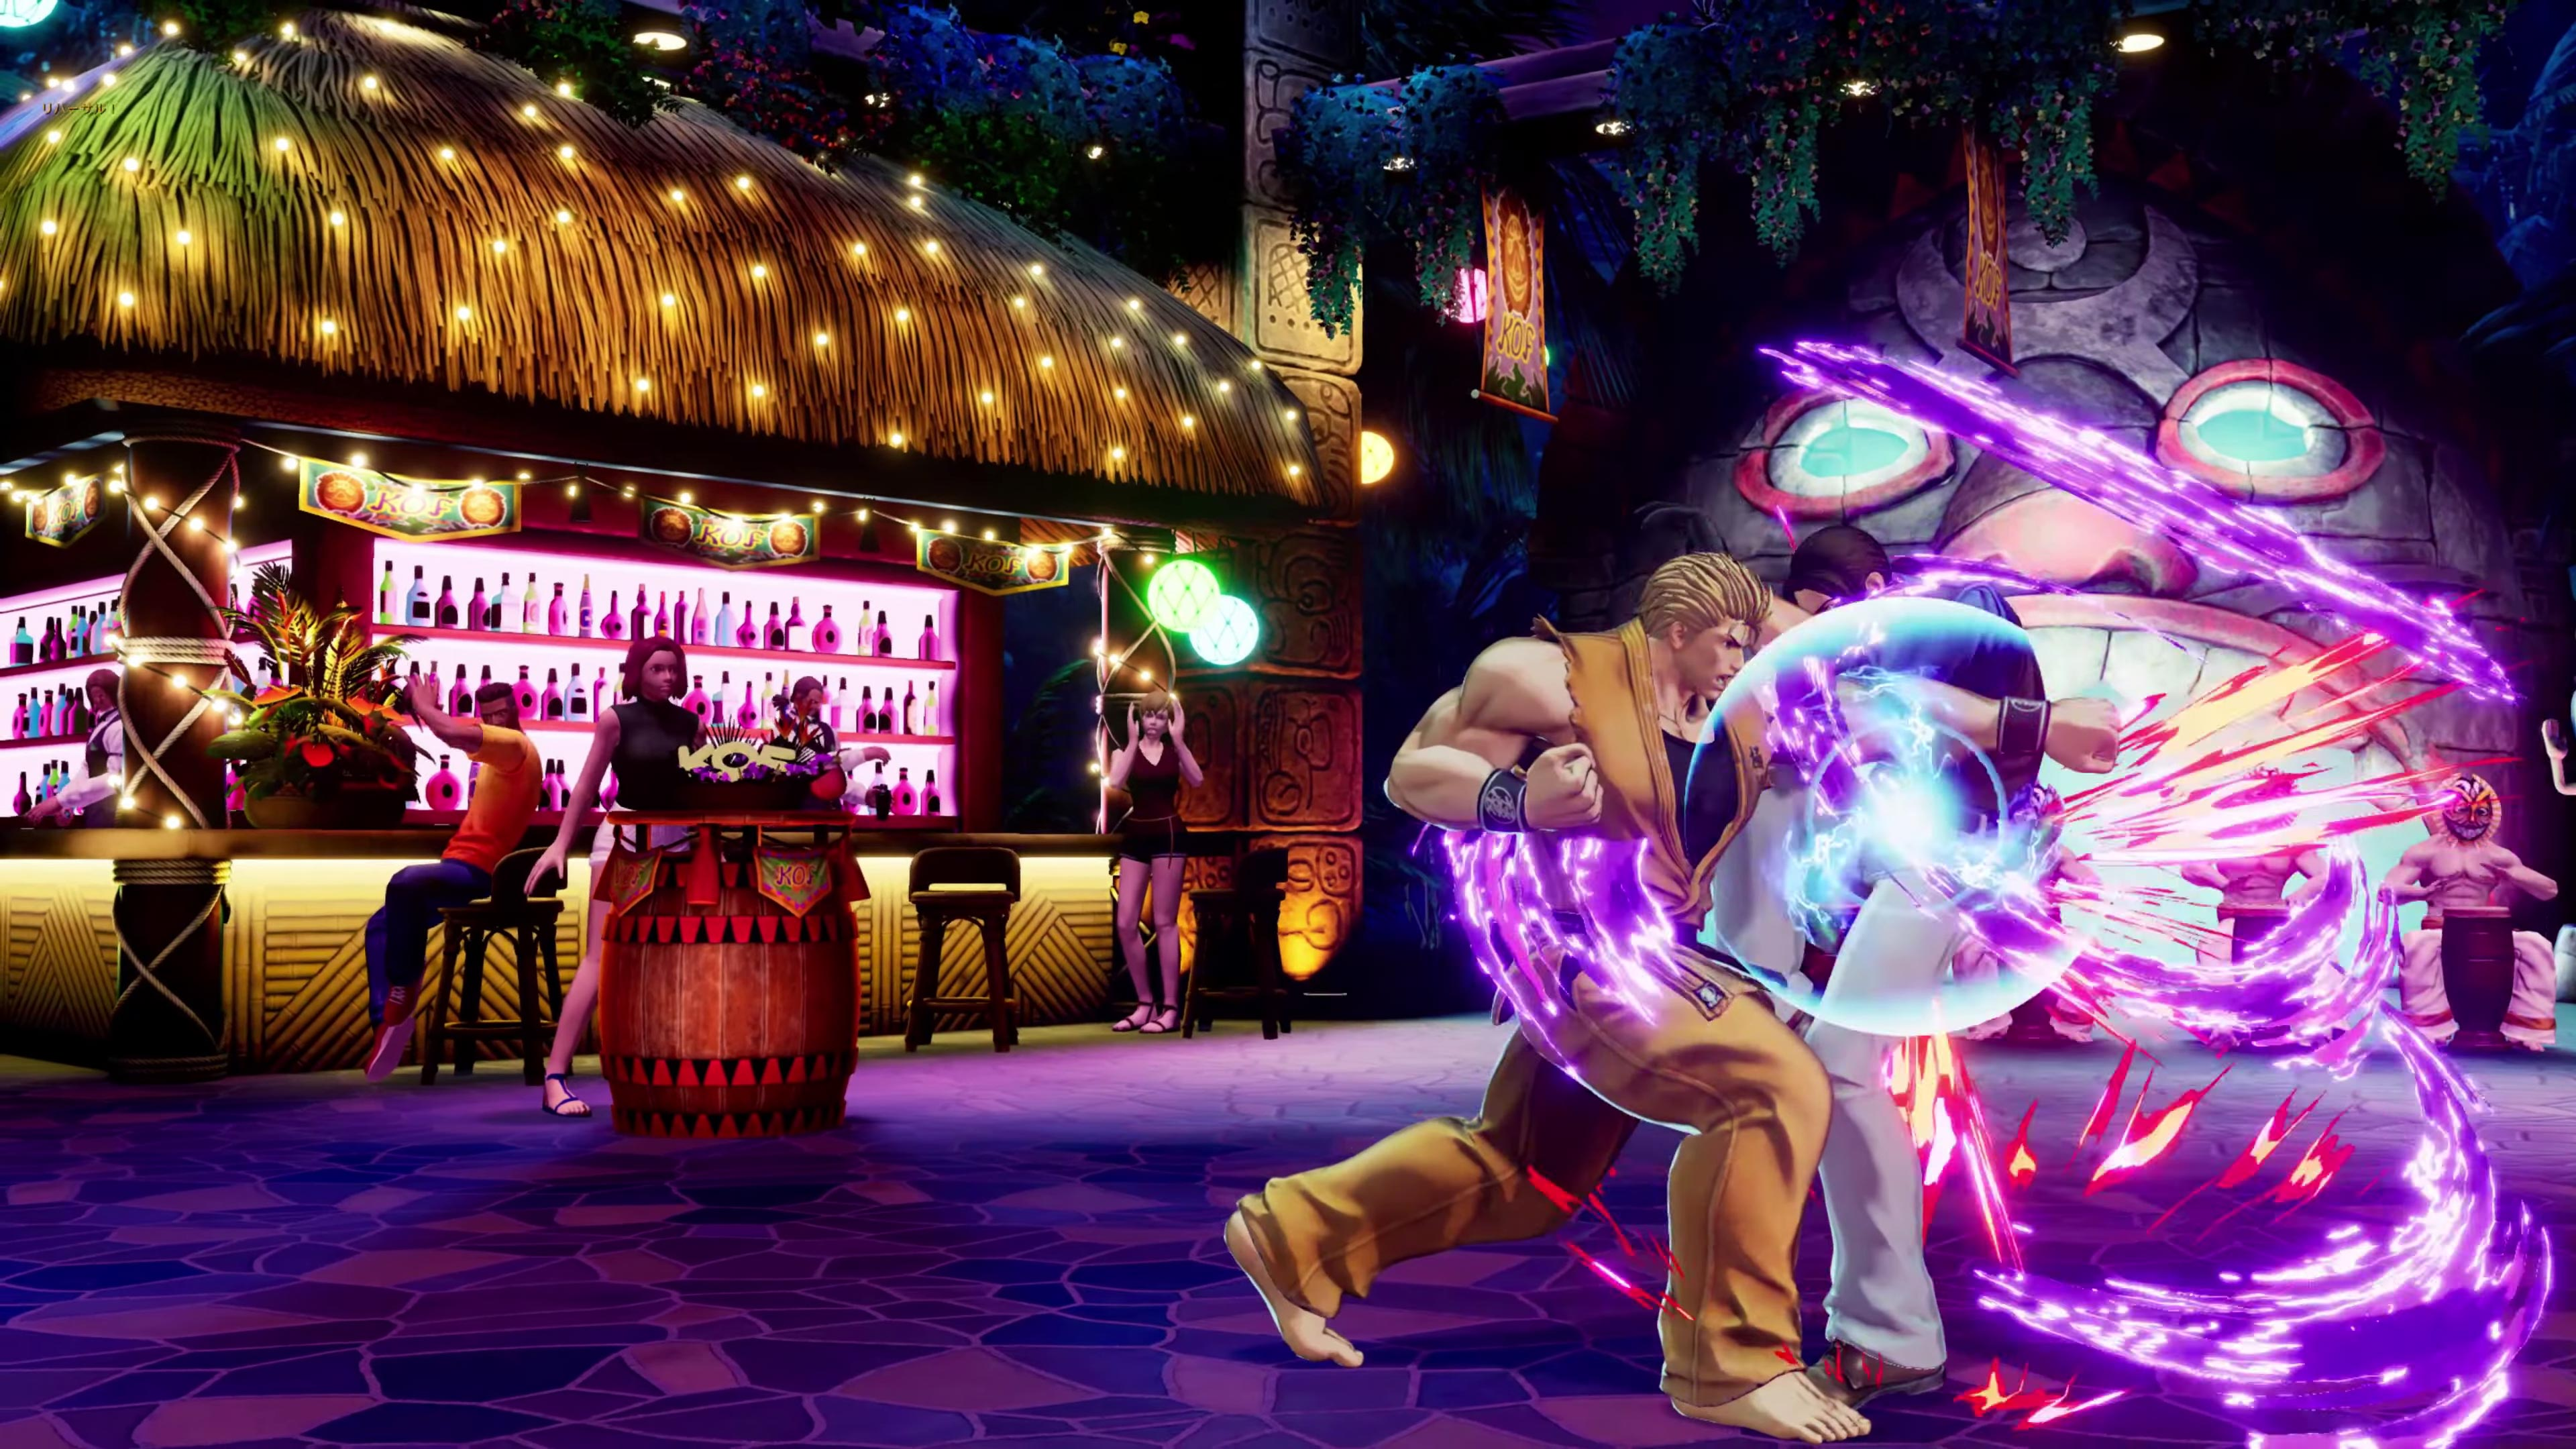 Robert and Ryo KOF15 reveal 8 out of 9 image gallery